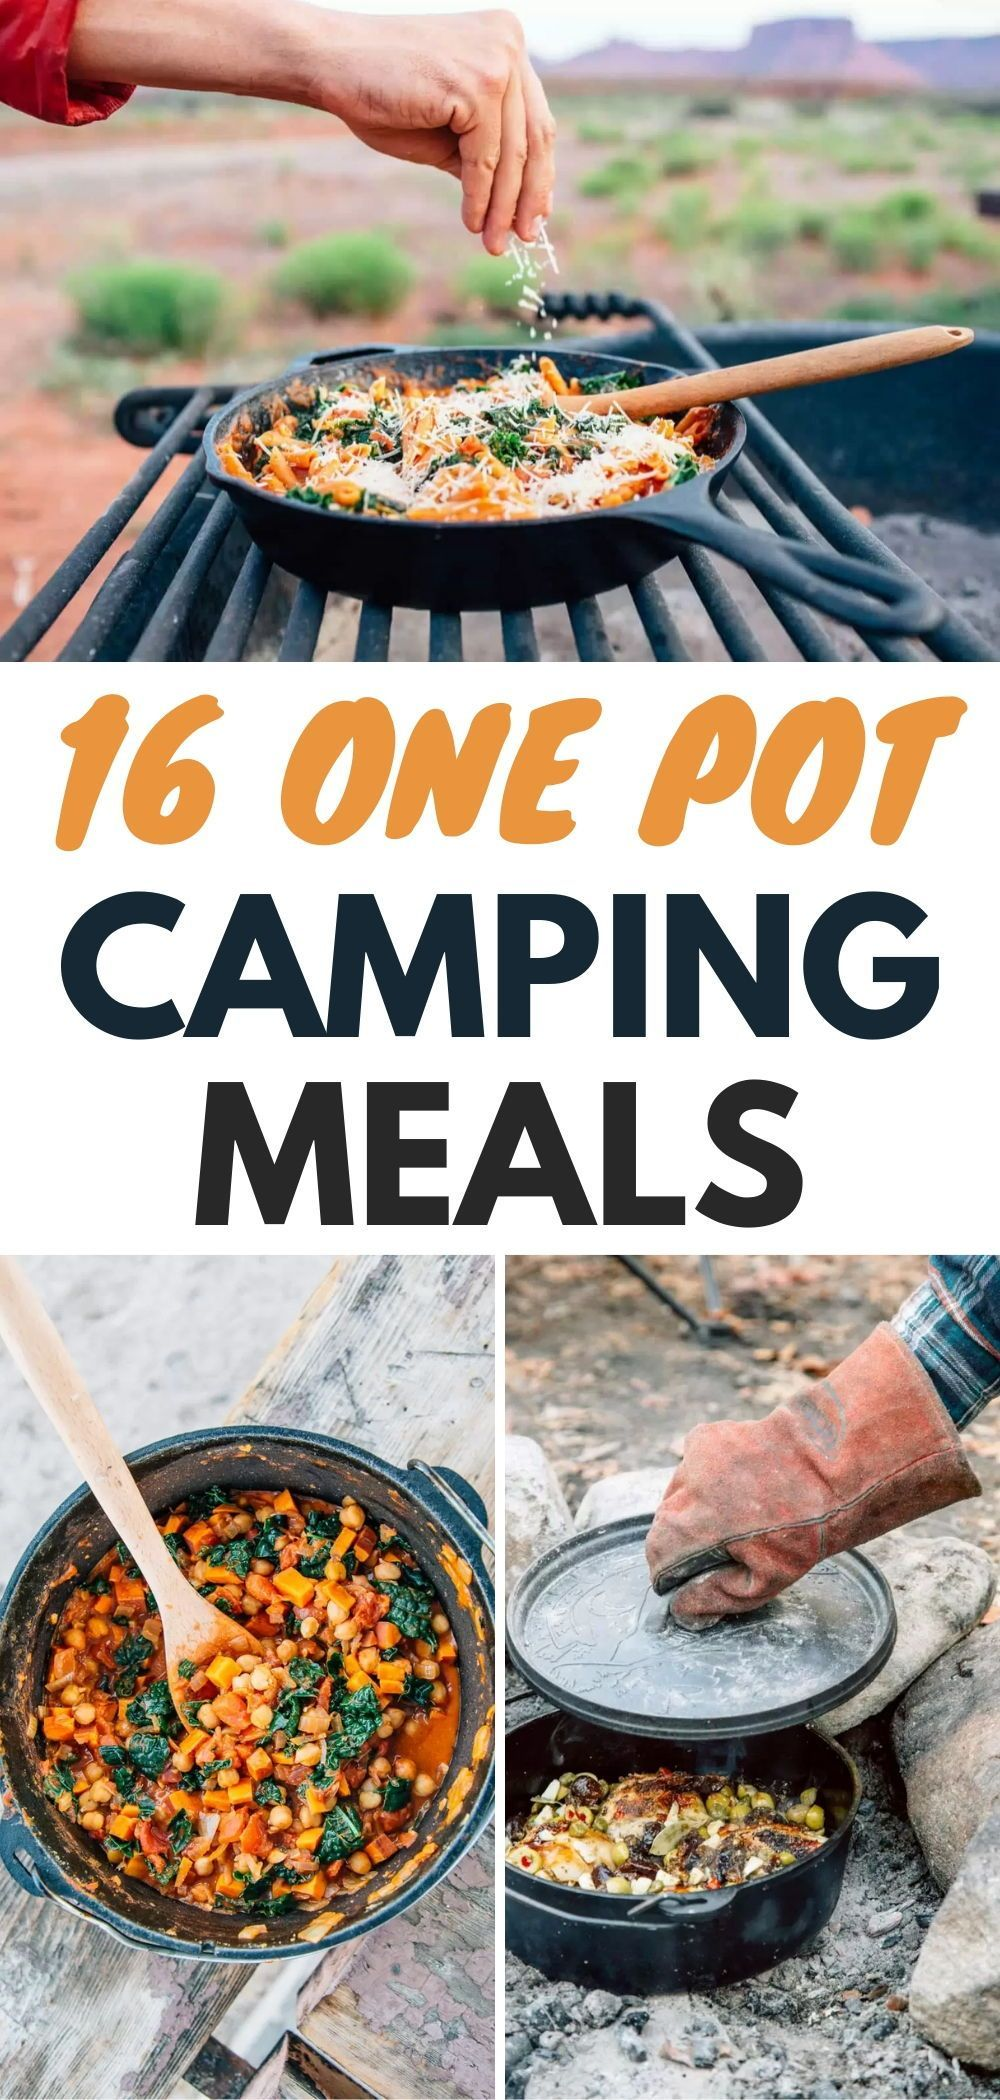 16 One Pot Camping Meals Camping Meals Pot In 2020 Camping Meal Planning Healthy Camping Food Camping Menu